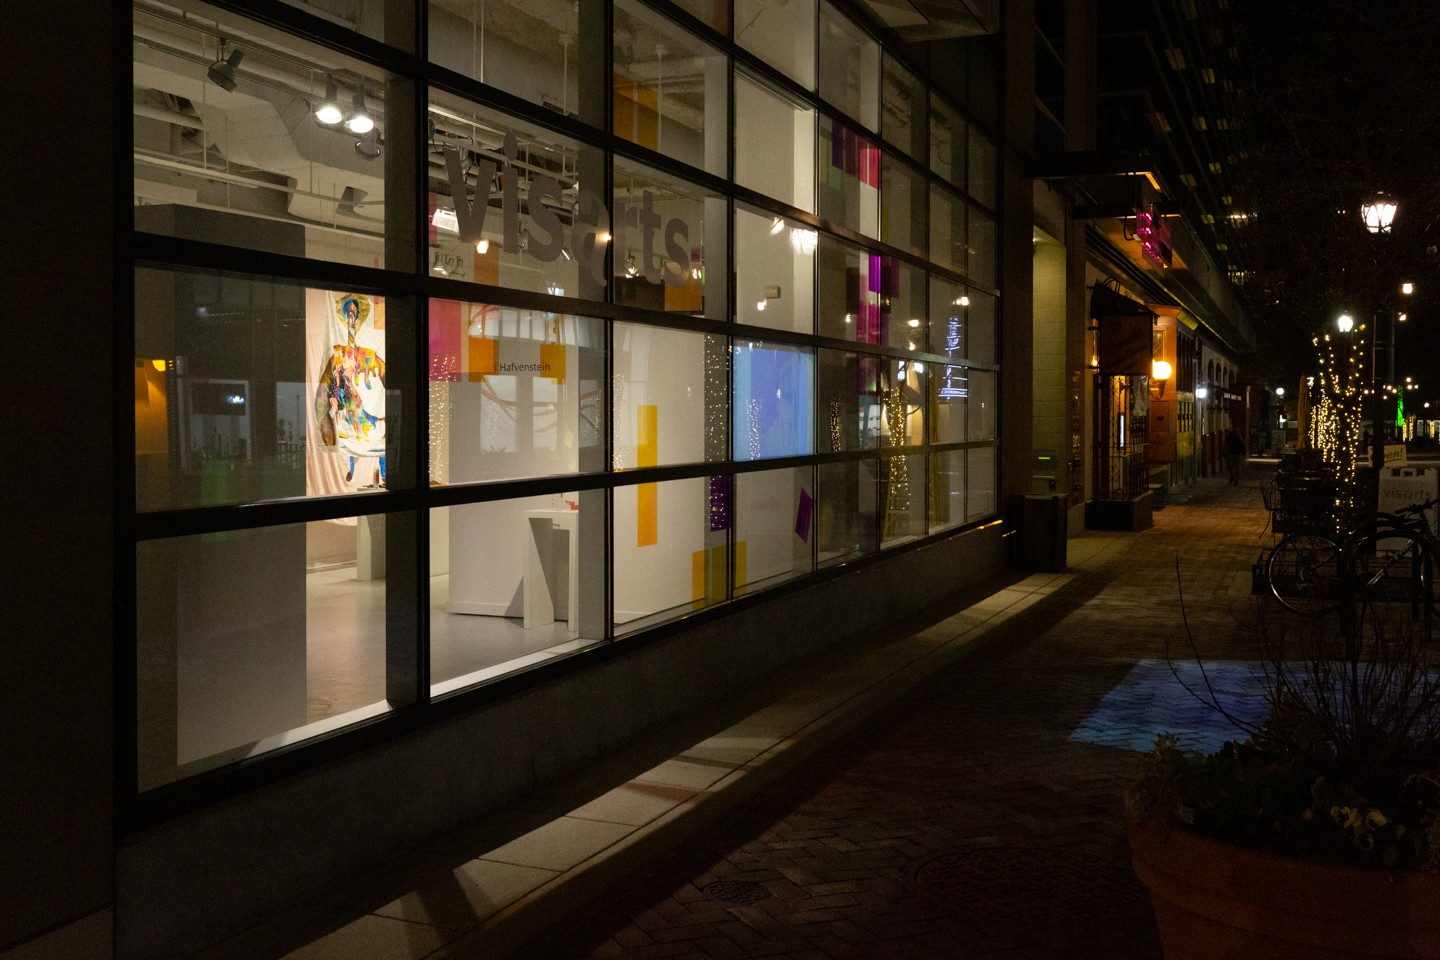 Colored film placed on the windows of the Gibbs Gallery at VisArts Center in Rockville, MD is seen from the exterior at night. A video projected through translucent film on the interior of the window can be seen from outside and on the sidewalk below.